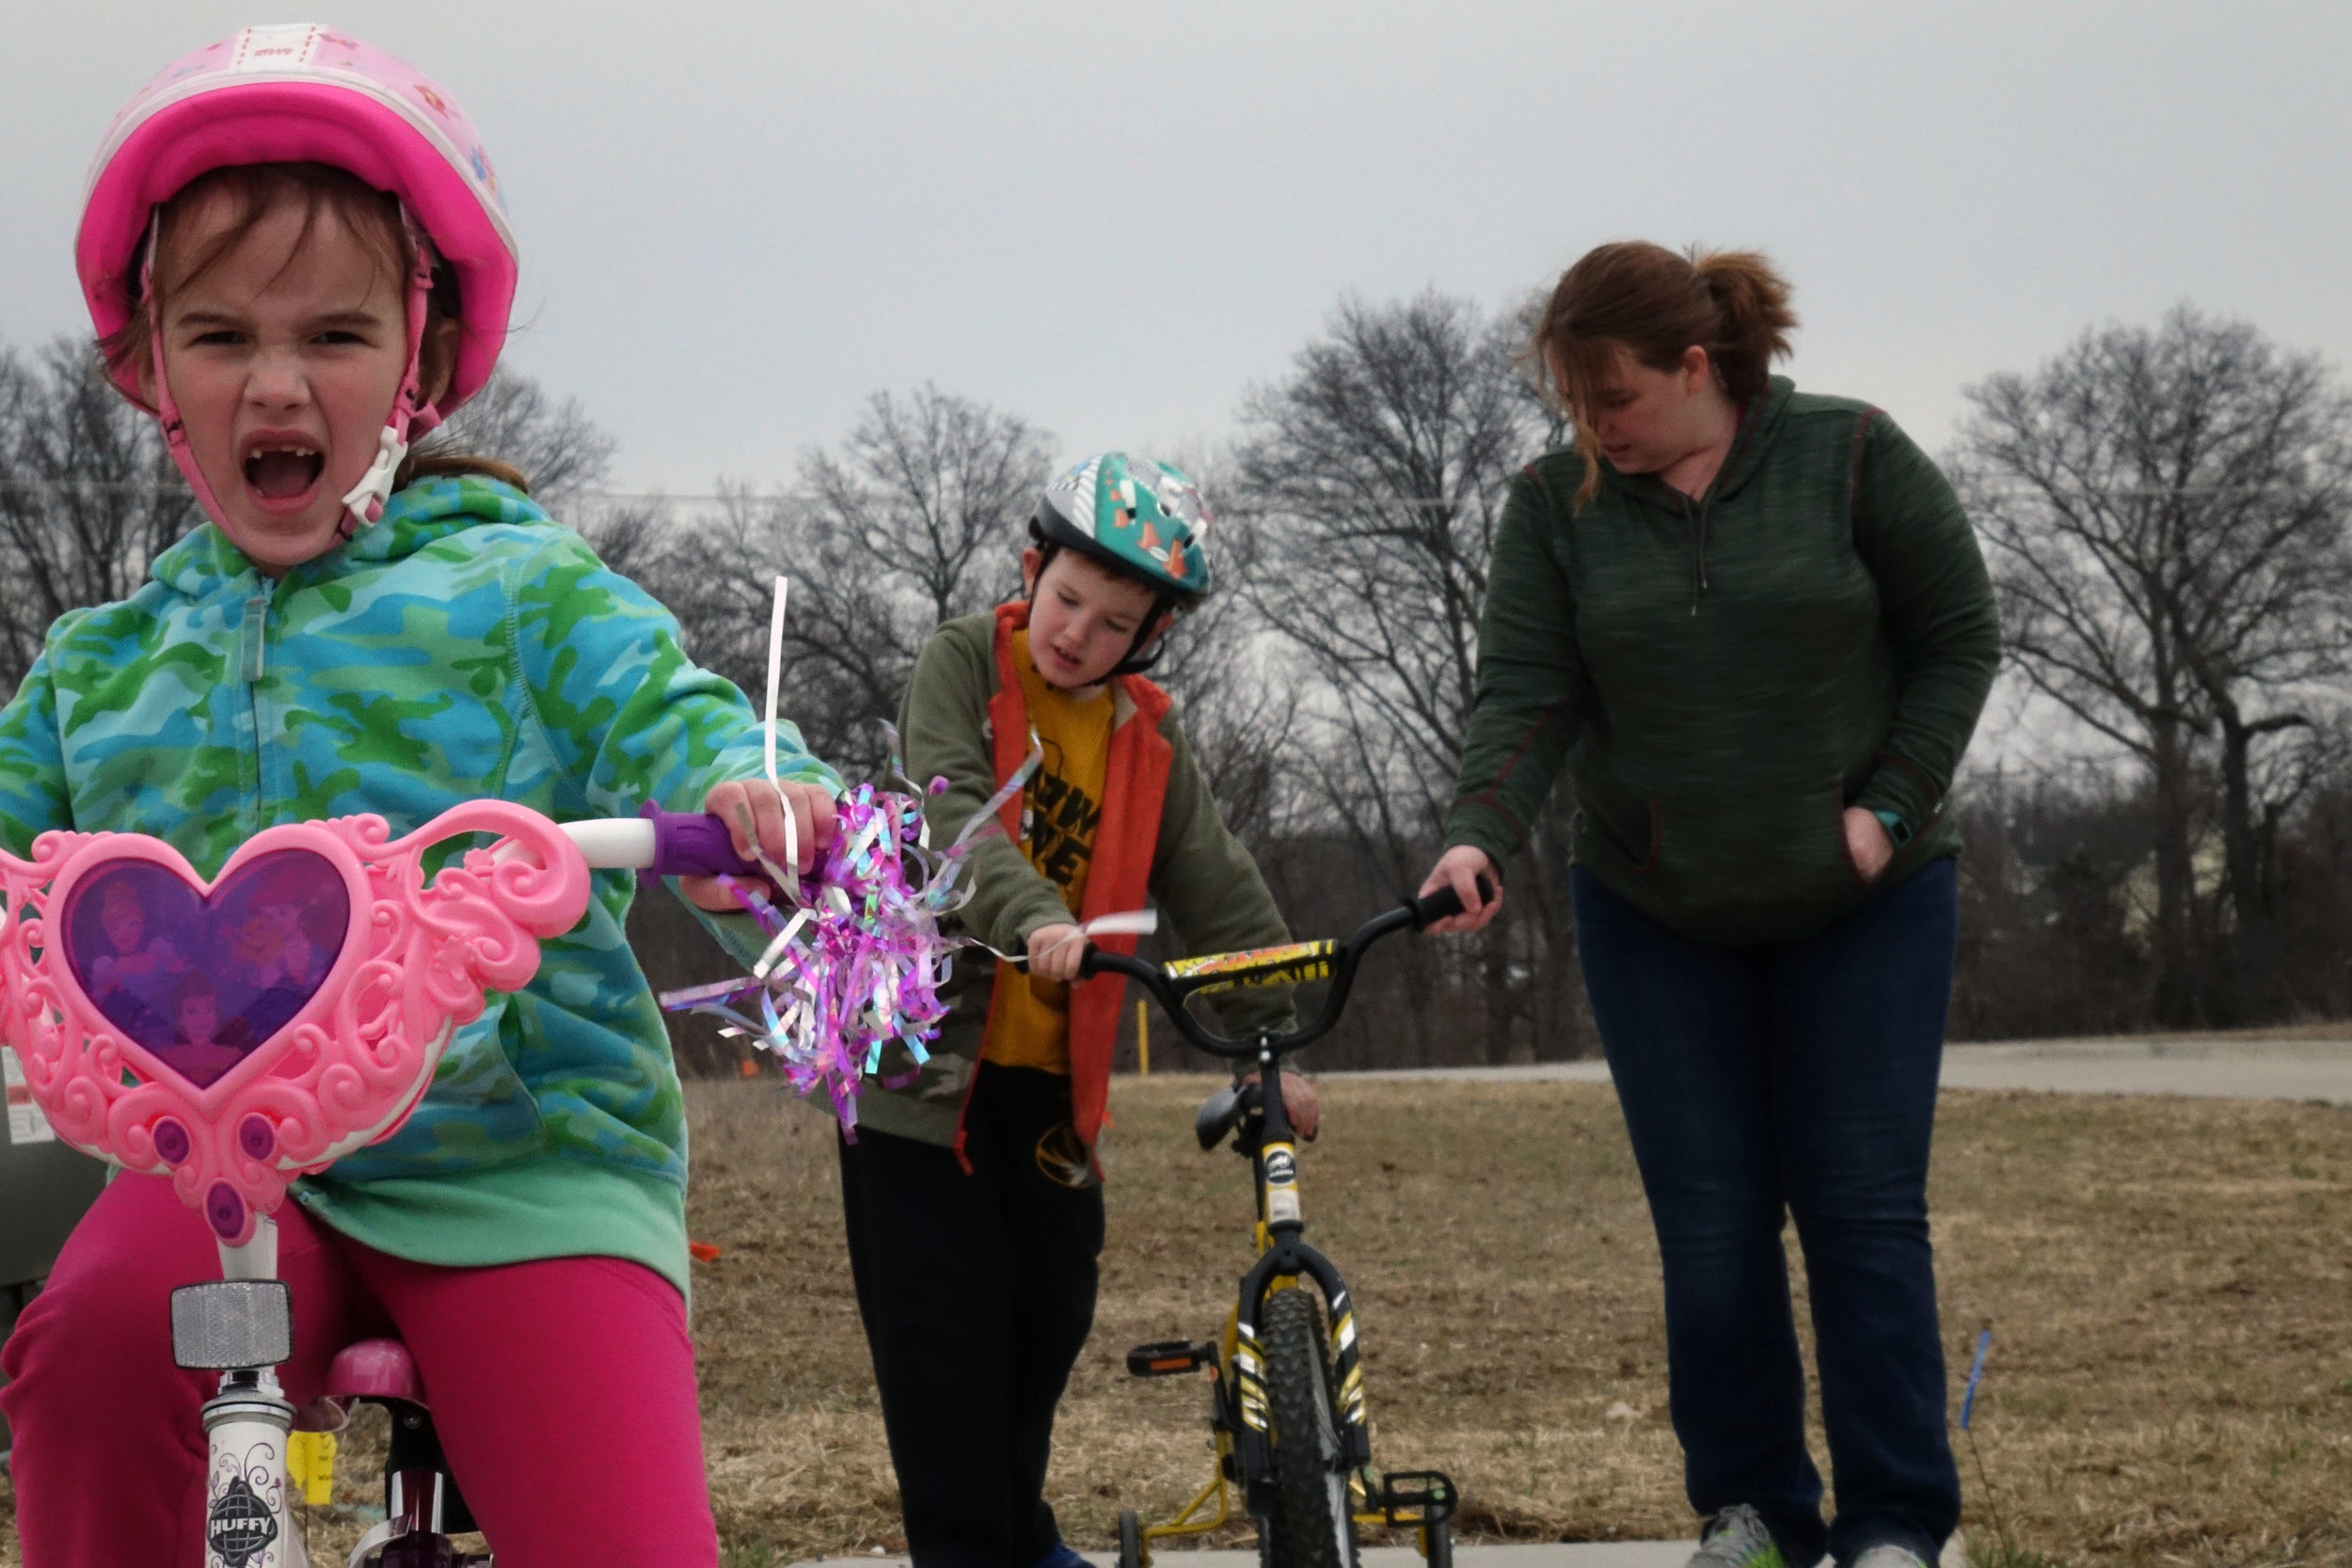 """Regan Arnett, 6, leads the way during a neighborhood bike ride with her brother and mom. """"[Regan and Logan] pretty much coexist,"""" Tara said. """"They will get in each other's world every once in a while, but she moves too fast to wait on him ... It takes him a little bit longer for him to get involved in an activity."""" Credit: Kyra Haas / KBIA"""